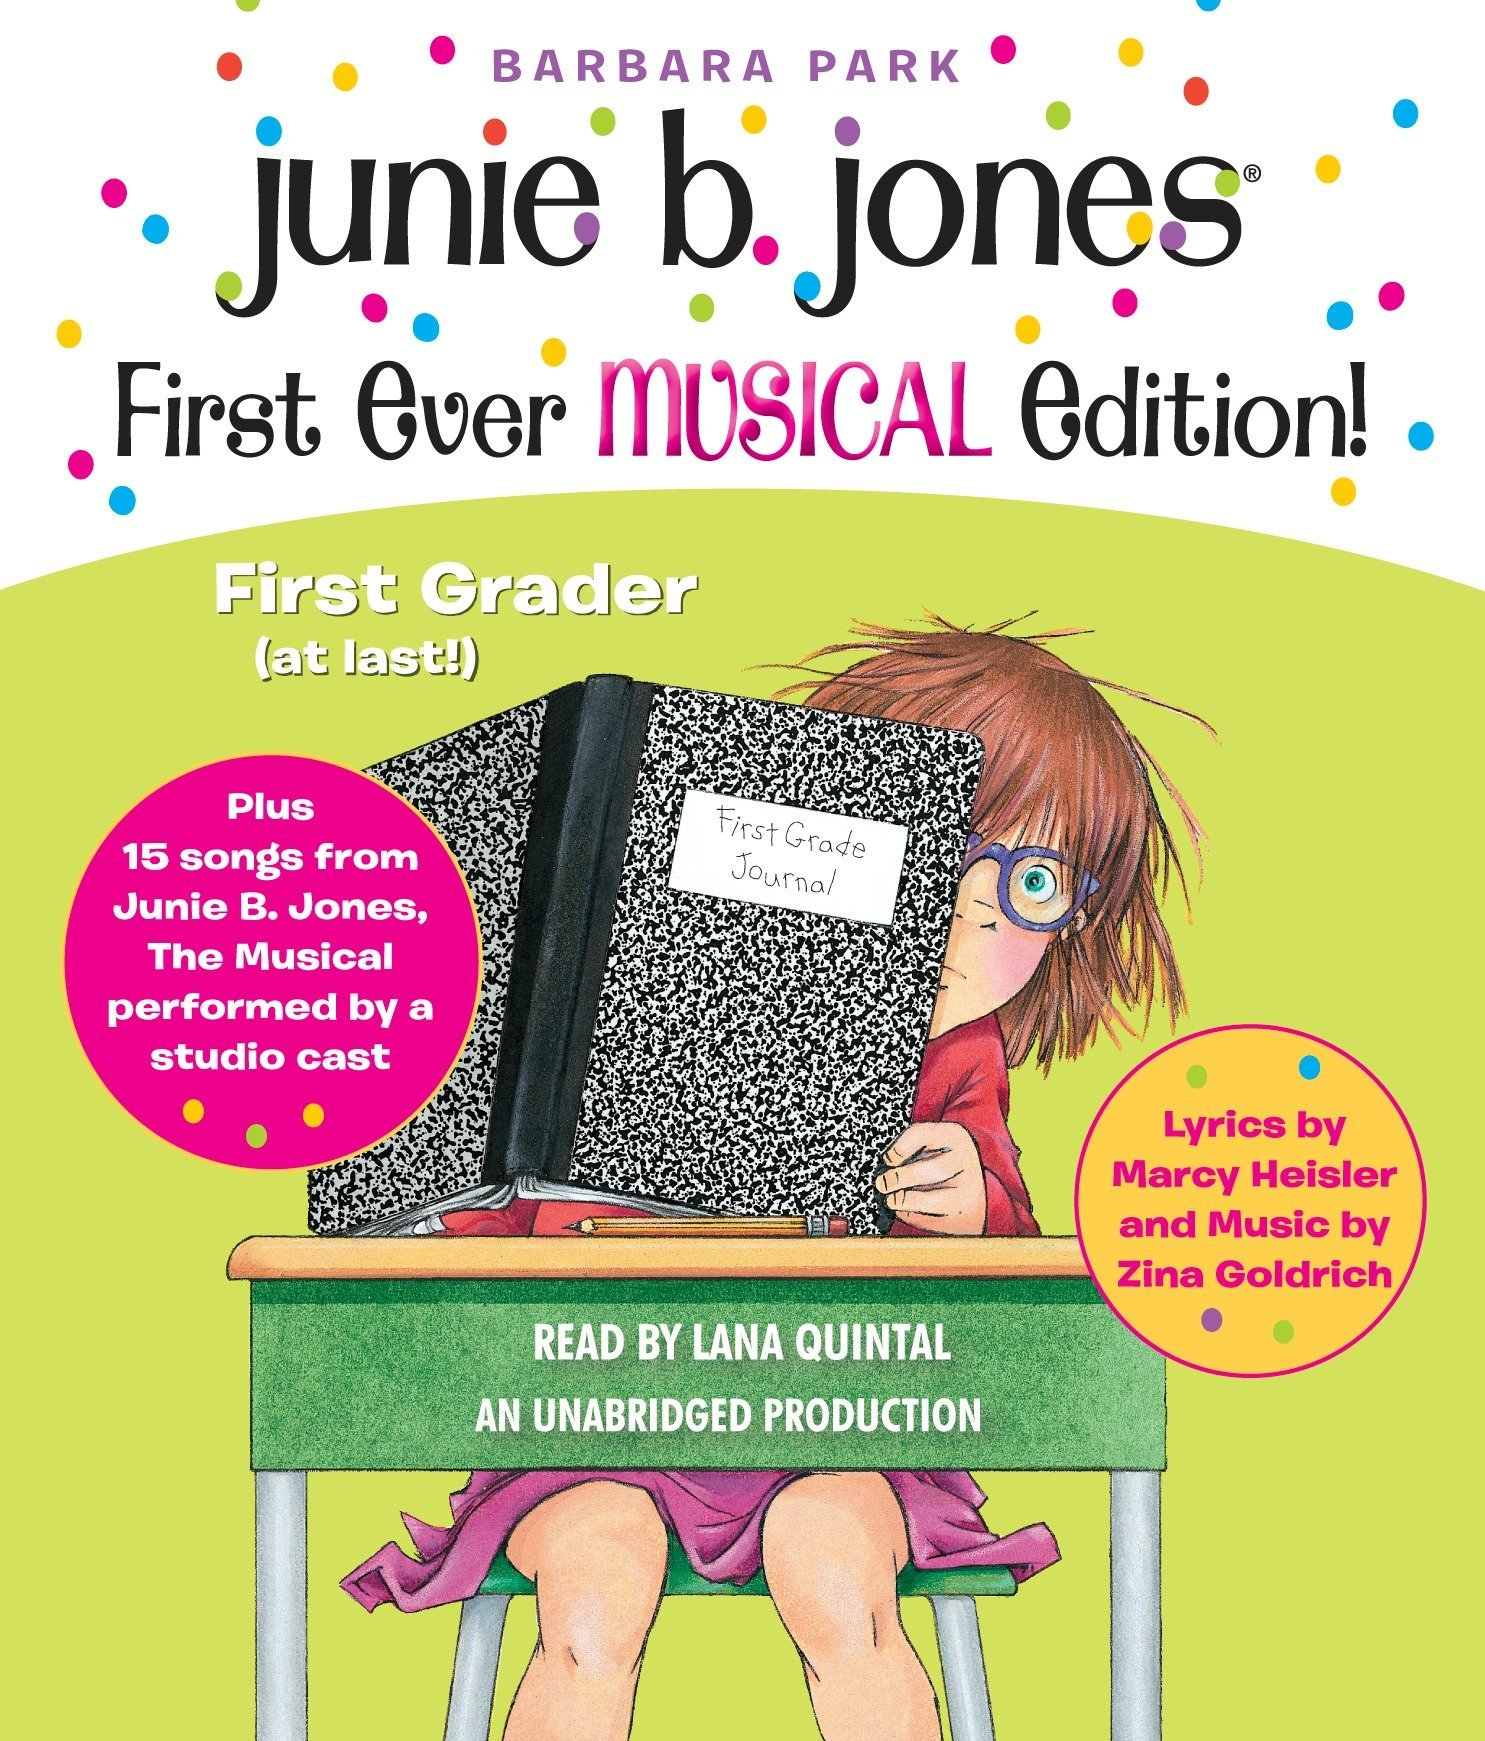 Junie B. Jones First Ever MUSICAL Edition!: Junie B., First Grader (at last!) Audiobook plus 15 Songs from Junie B. Jones The Musical